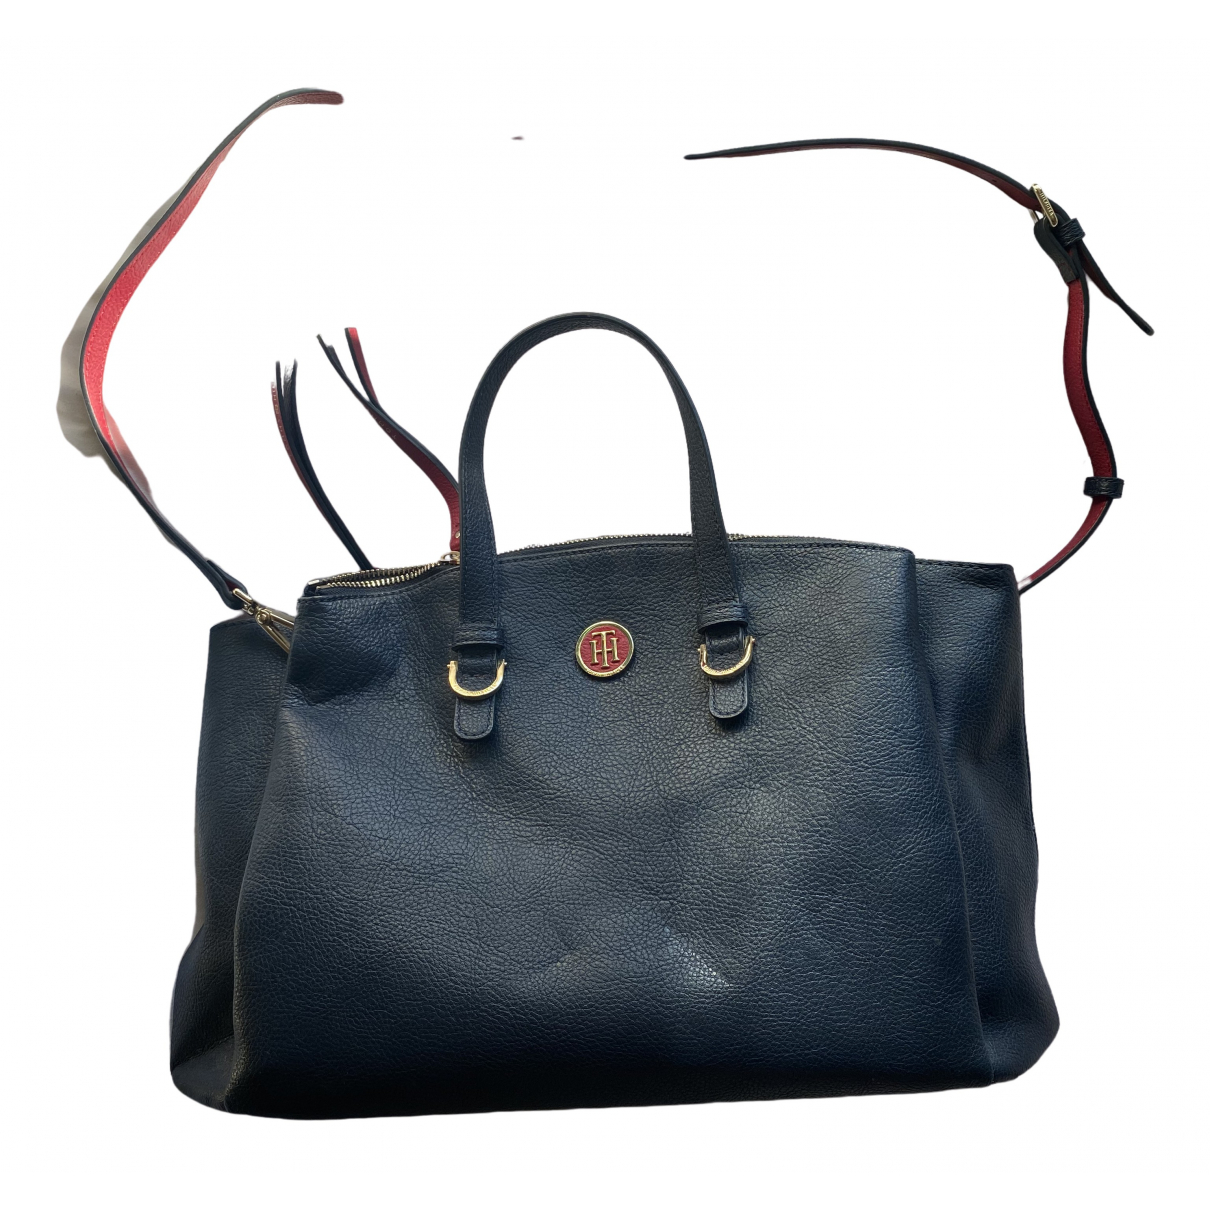 Tommy Hilfiger \N Navy Patent leather Clutch bag for Women \N